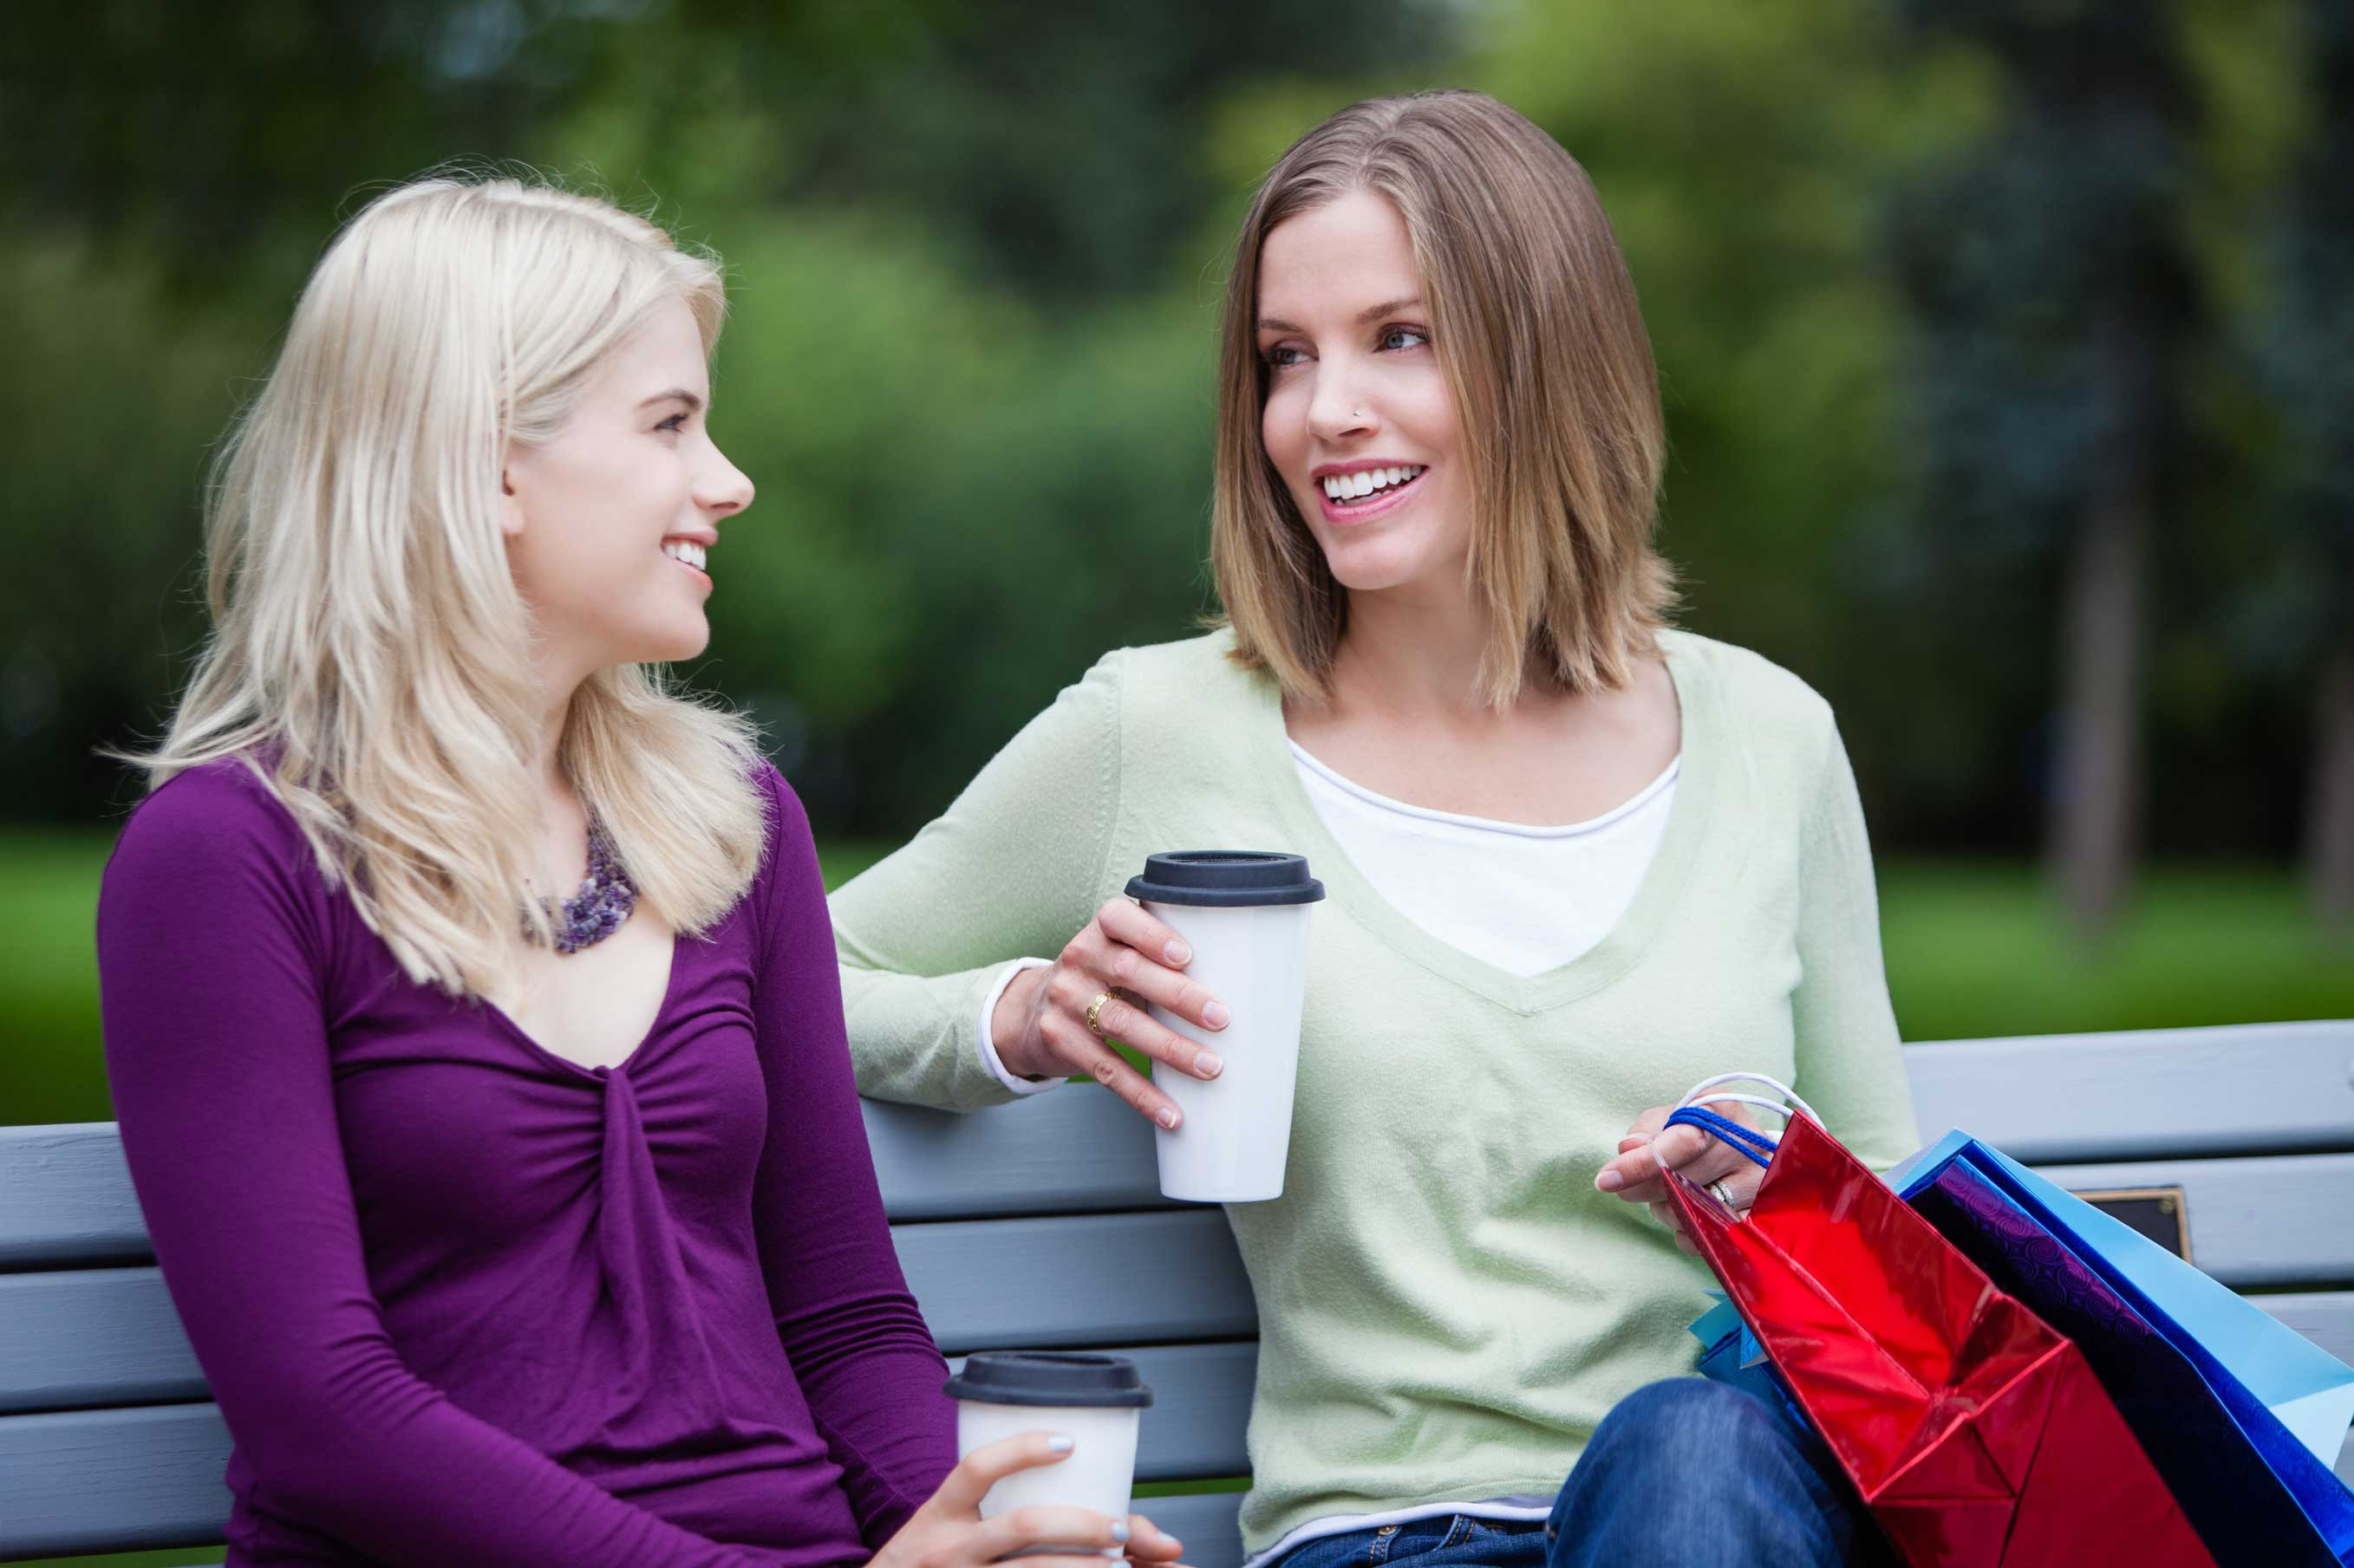 stock-photo-shopping-women-with-takeaway-coffee-on-bench-112589456.jpg